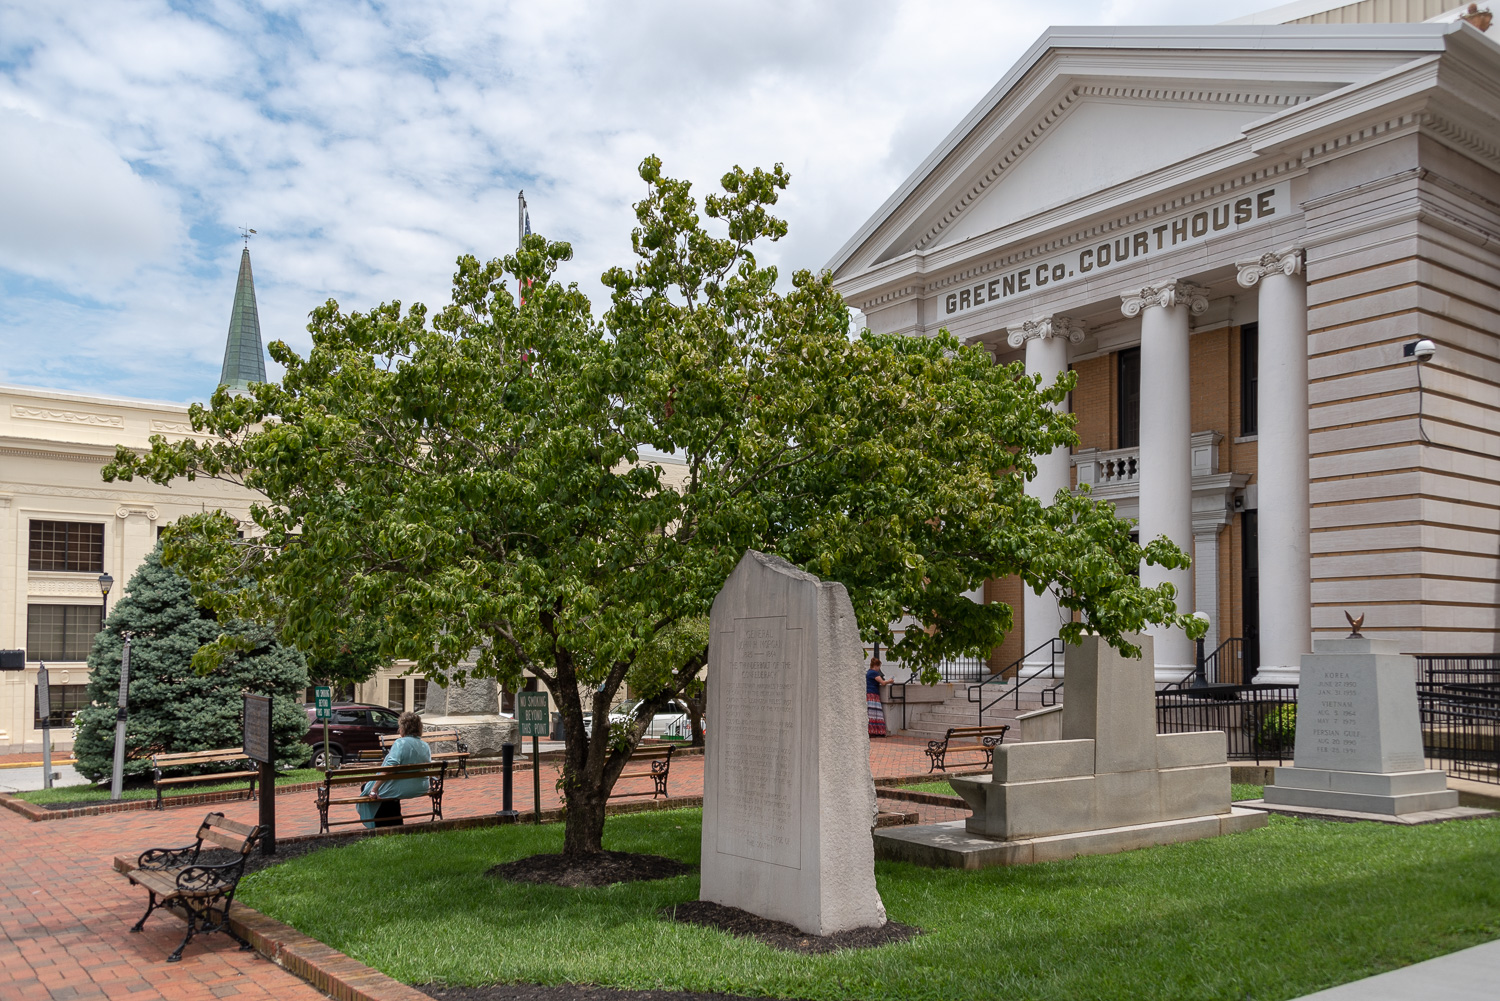 Greene County Courthouse features several statues and monuments.